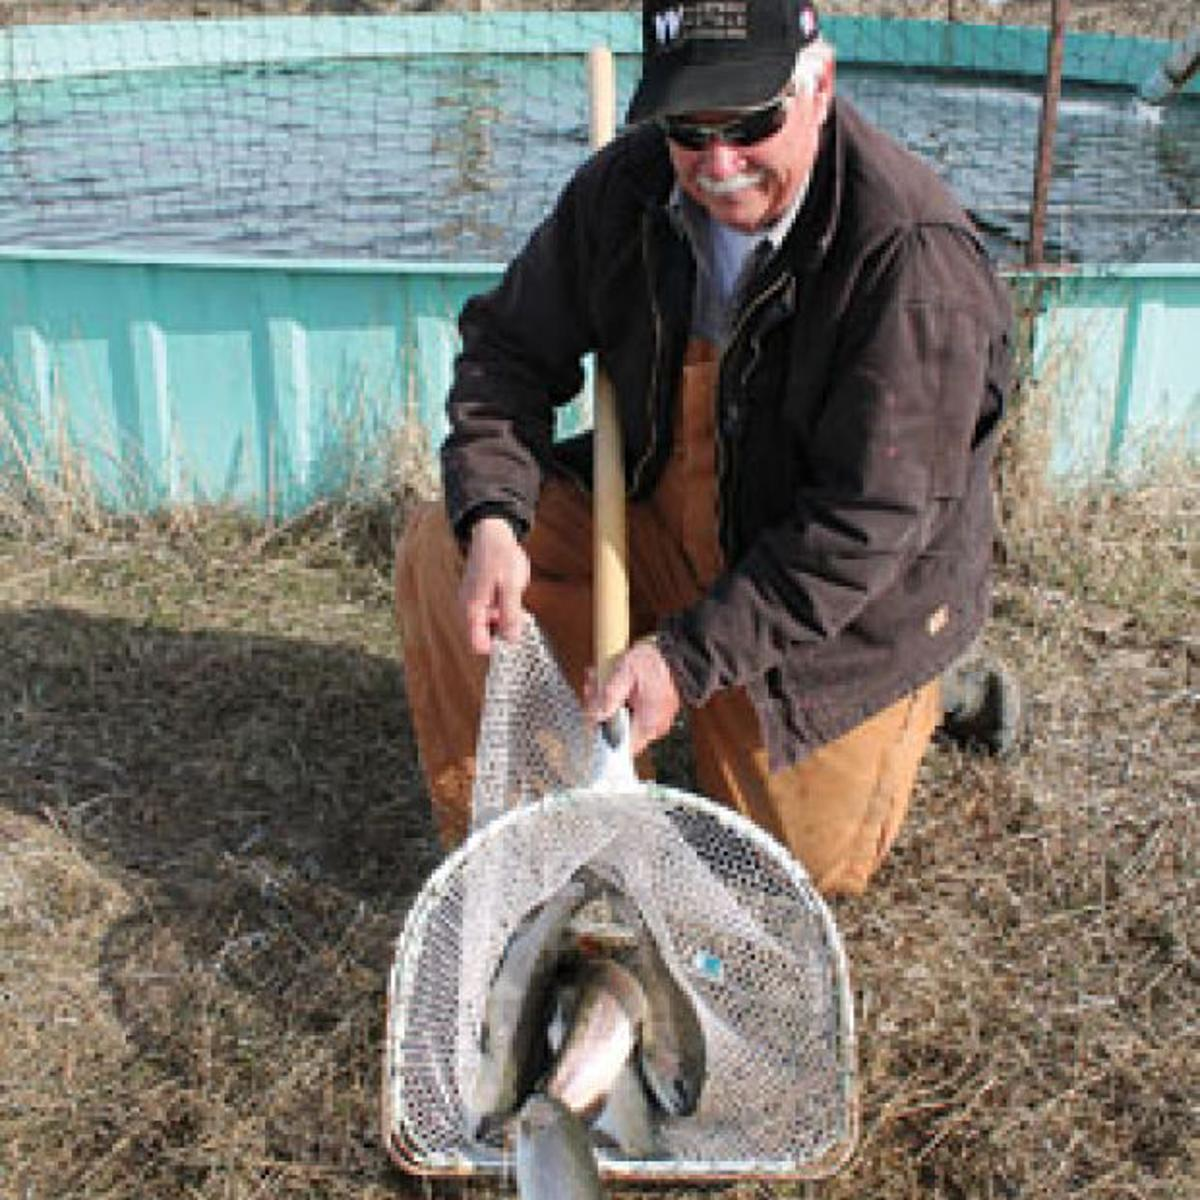 Raising, selling trout: Area man provides fish to